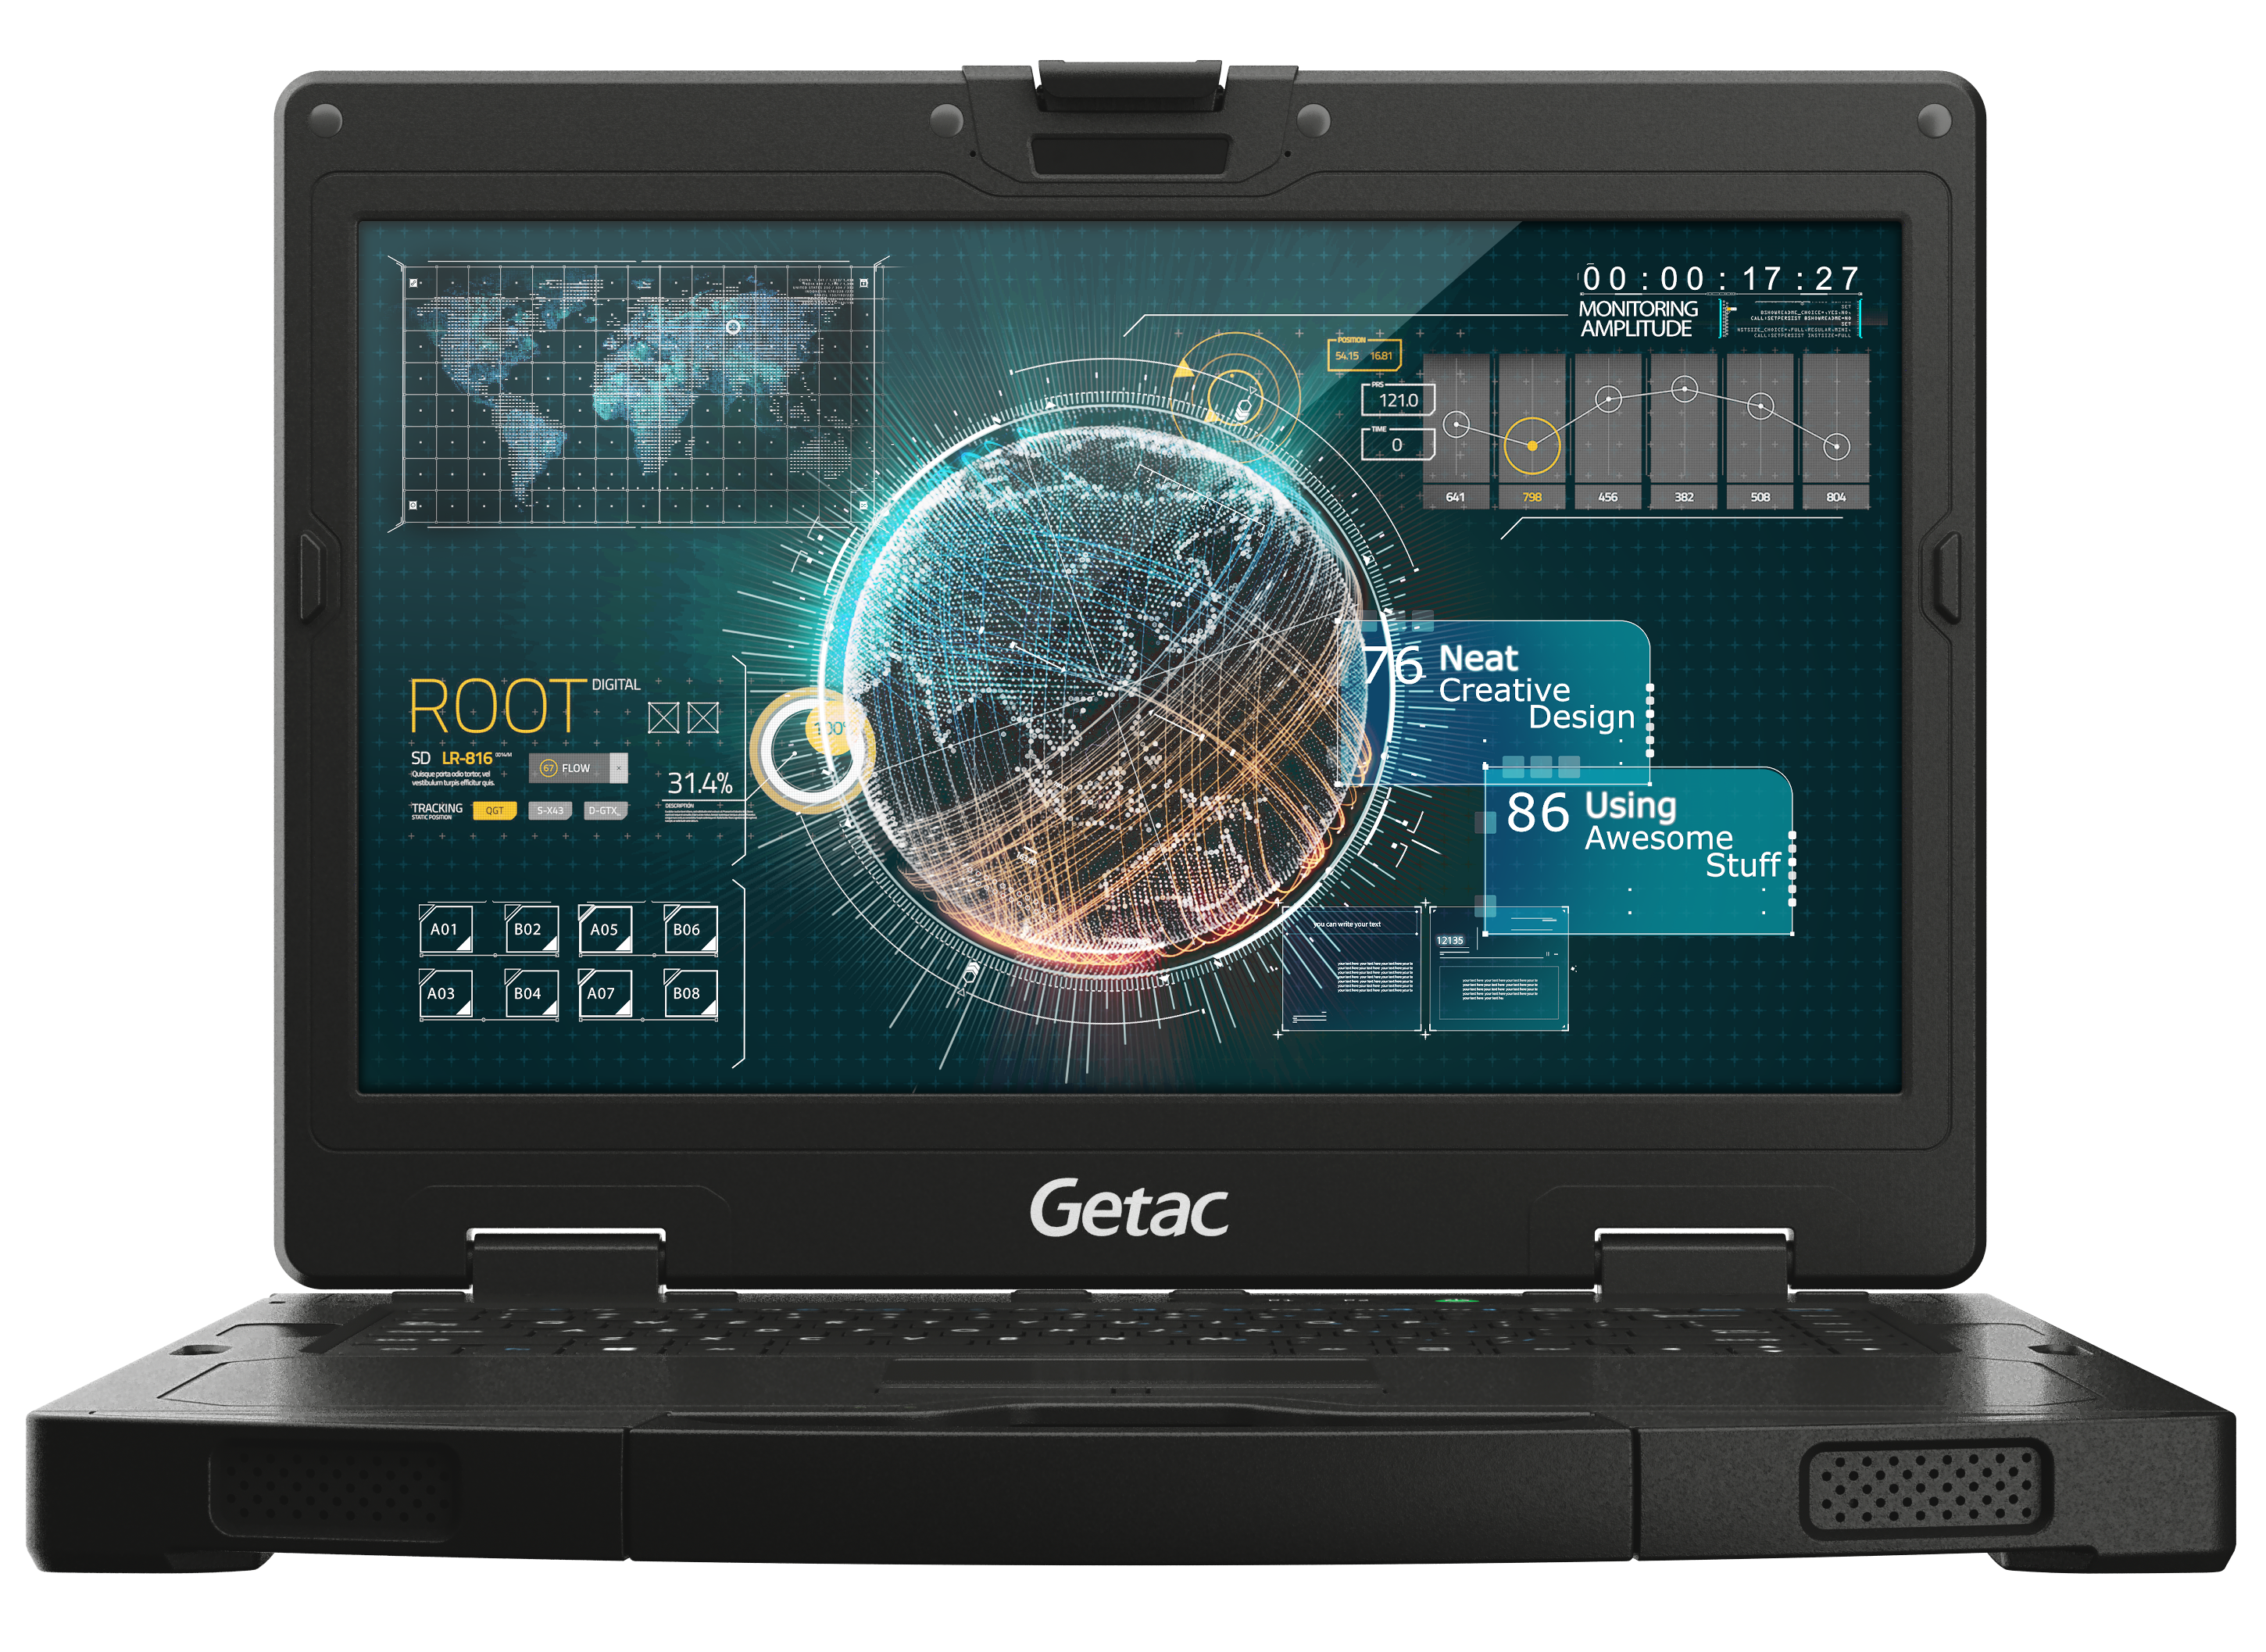 Getac S410 multi-factor authentication and customisation features.